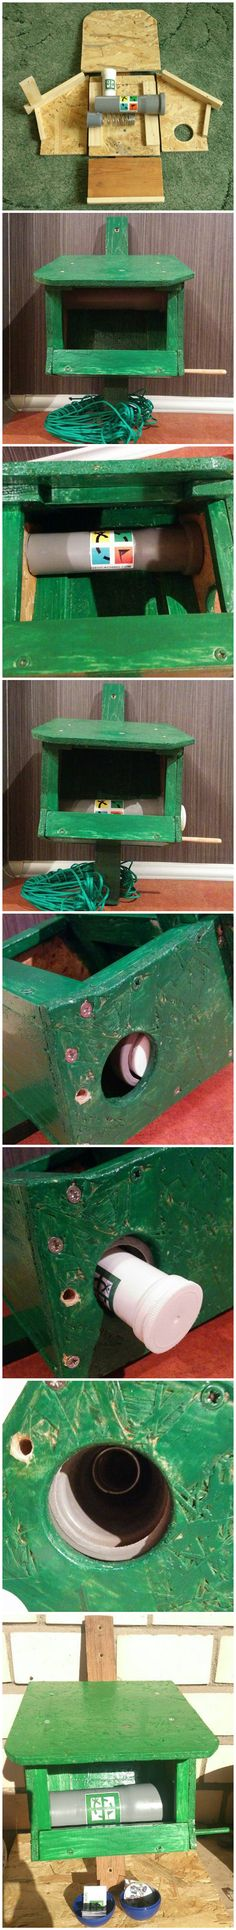 Muggles see a bird feeder. Geocachers find the logbook! A nice hide, and good variation from the typical bird house geocache. (pics from Facebook stitched together by I.B. Geocaching & pinned to Birdhouse Geocaches - https://www.pinterest.com/islandbuttons/birdhouse-geocaches/) #IBGCp